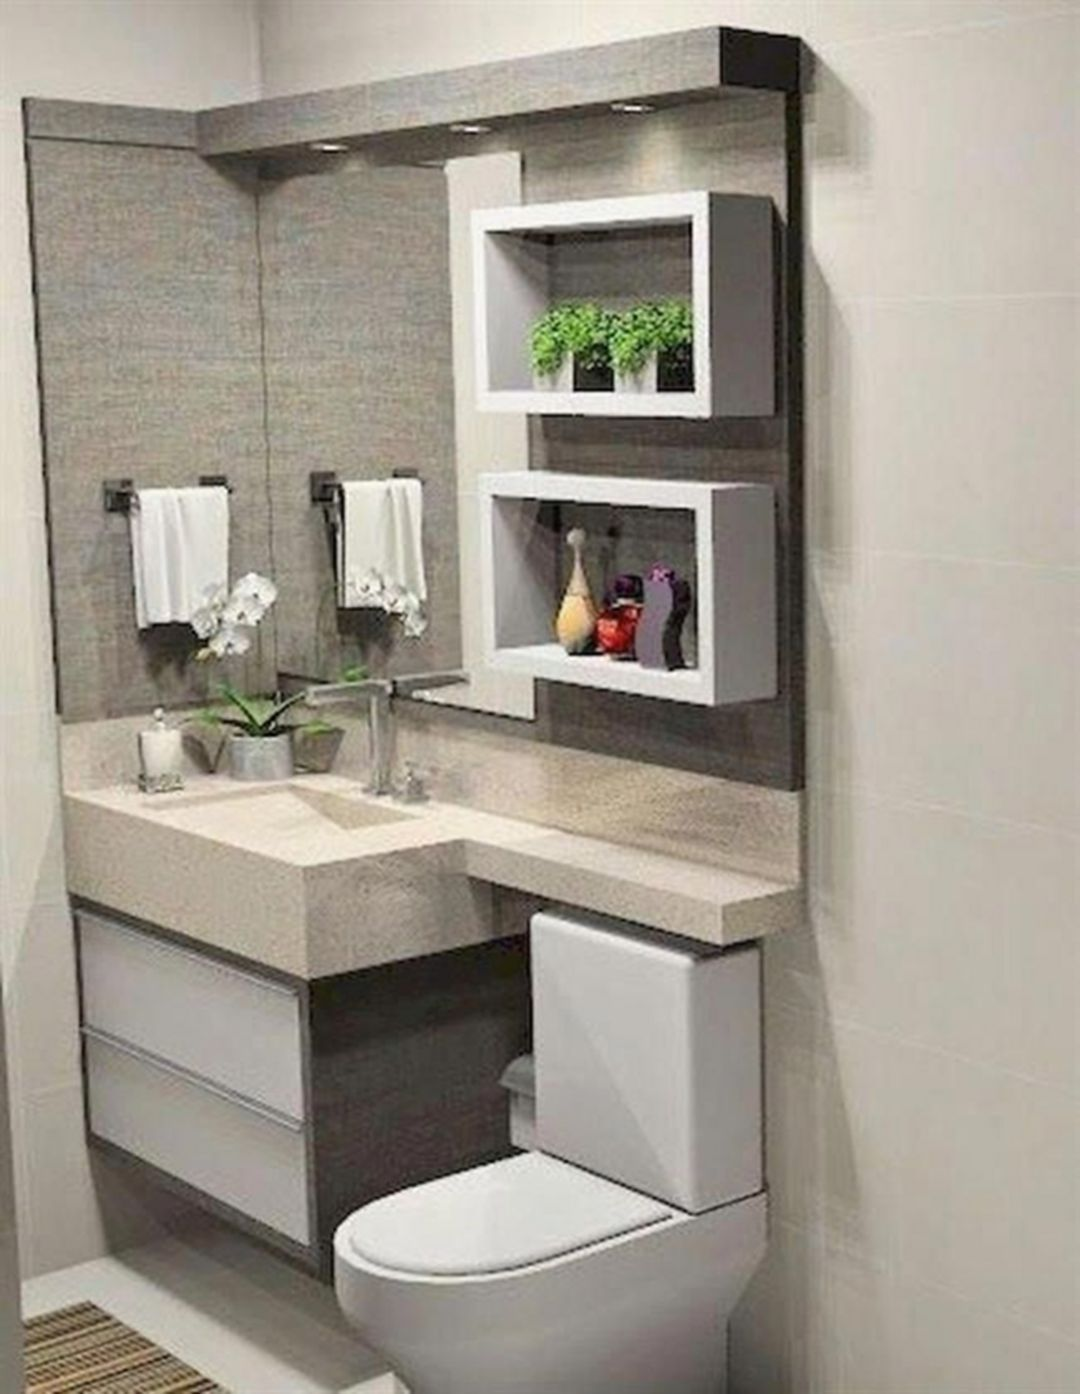 10 Awesome Small Modern Bathroom Design On A Budget - Decor It's